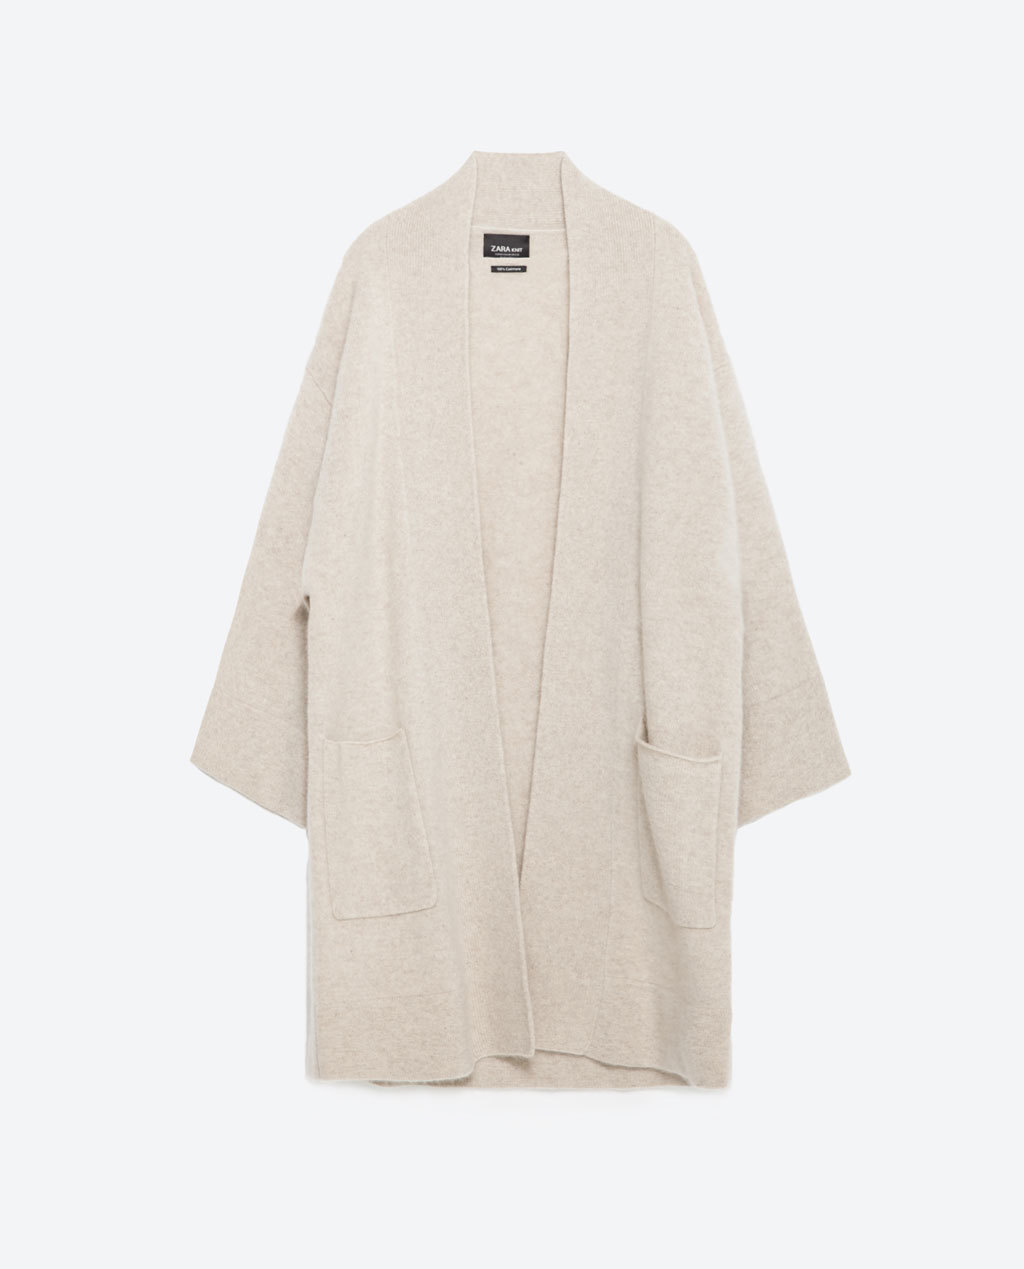 Cashmere Cardigan - sleeve style: dolman/batwing; pattern: plain; neckline: collarless open; style: open front; predominant colour: stone; occasions: casual, creative work; fit: loose; length: mid thigh; sleeve length: long sleeve; texture group: knits/crochet; season: a/w 2015